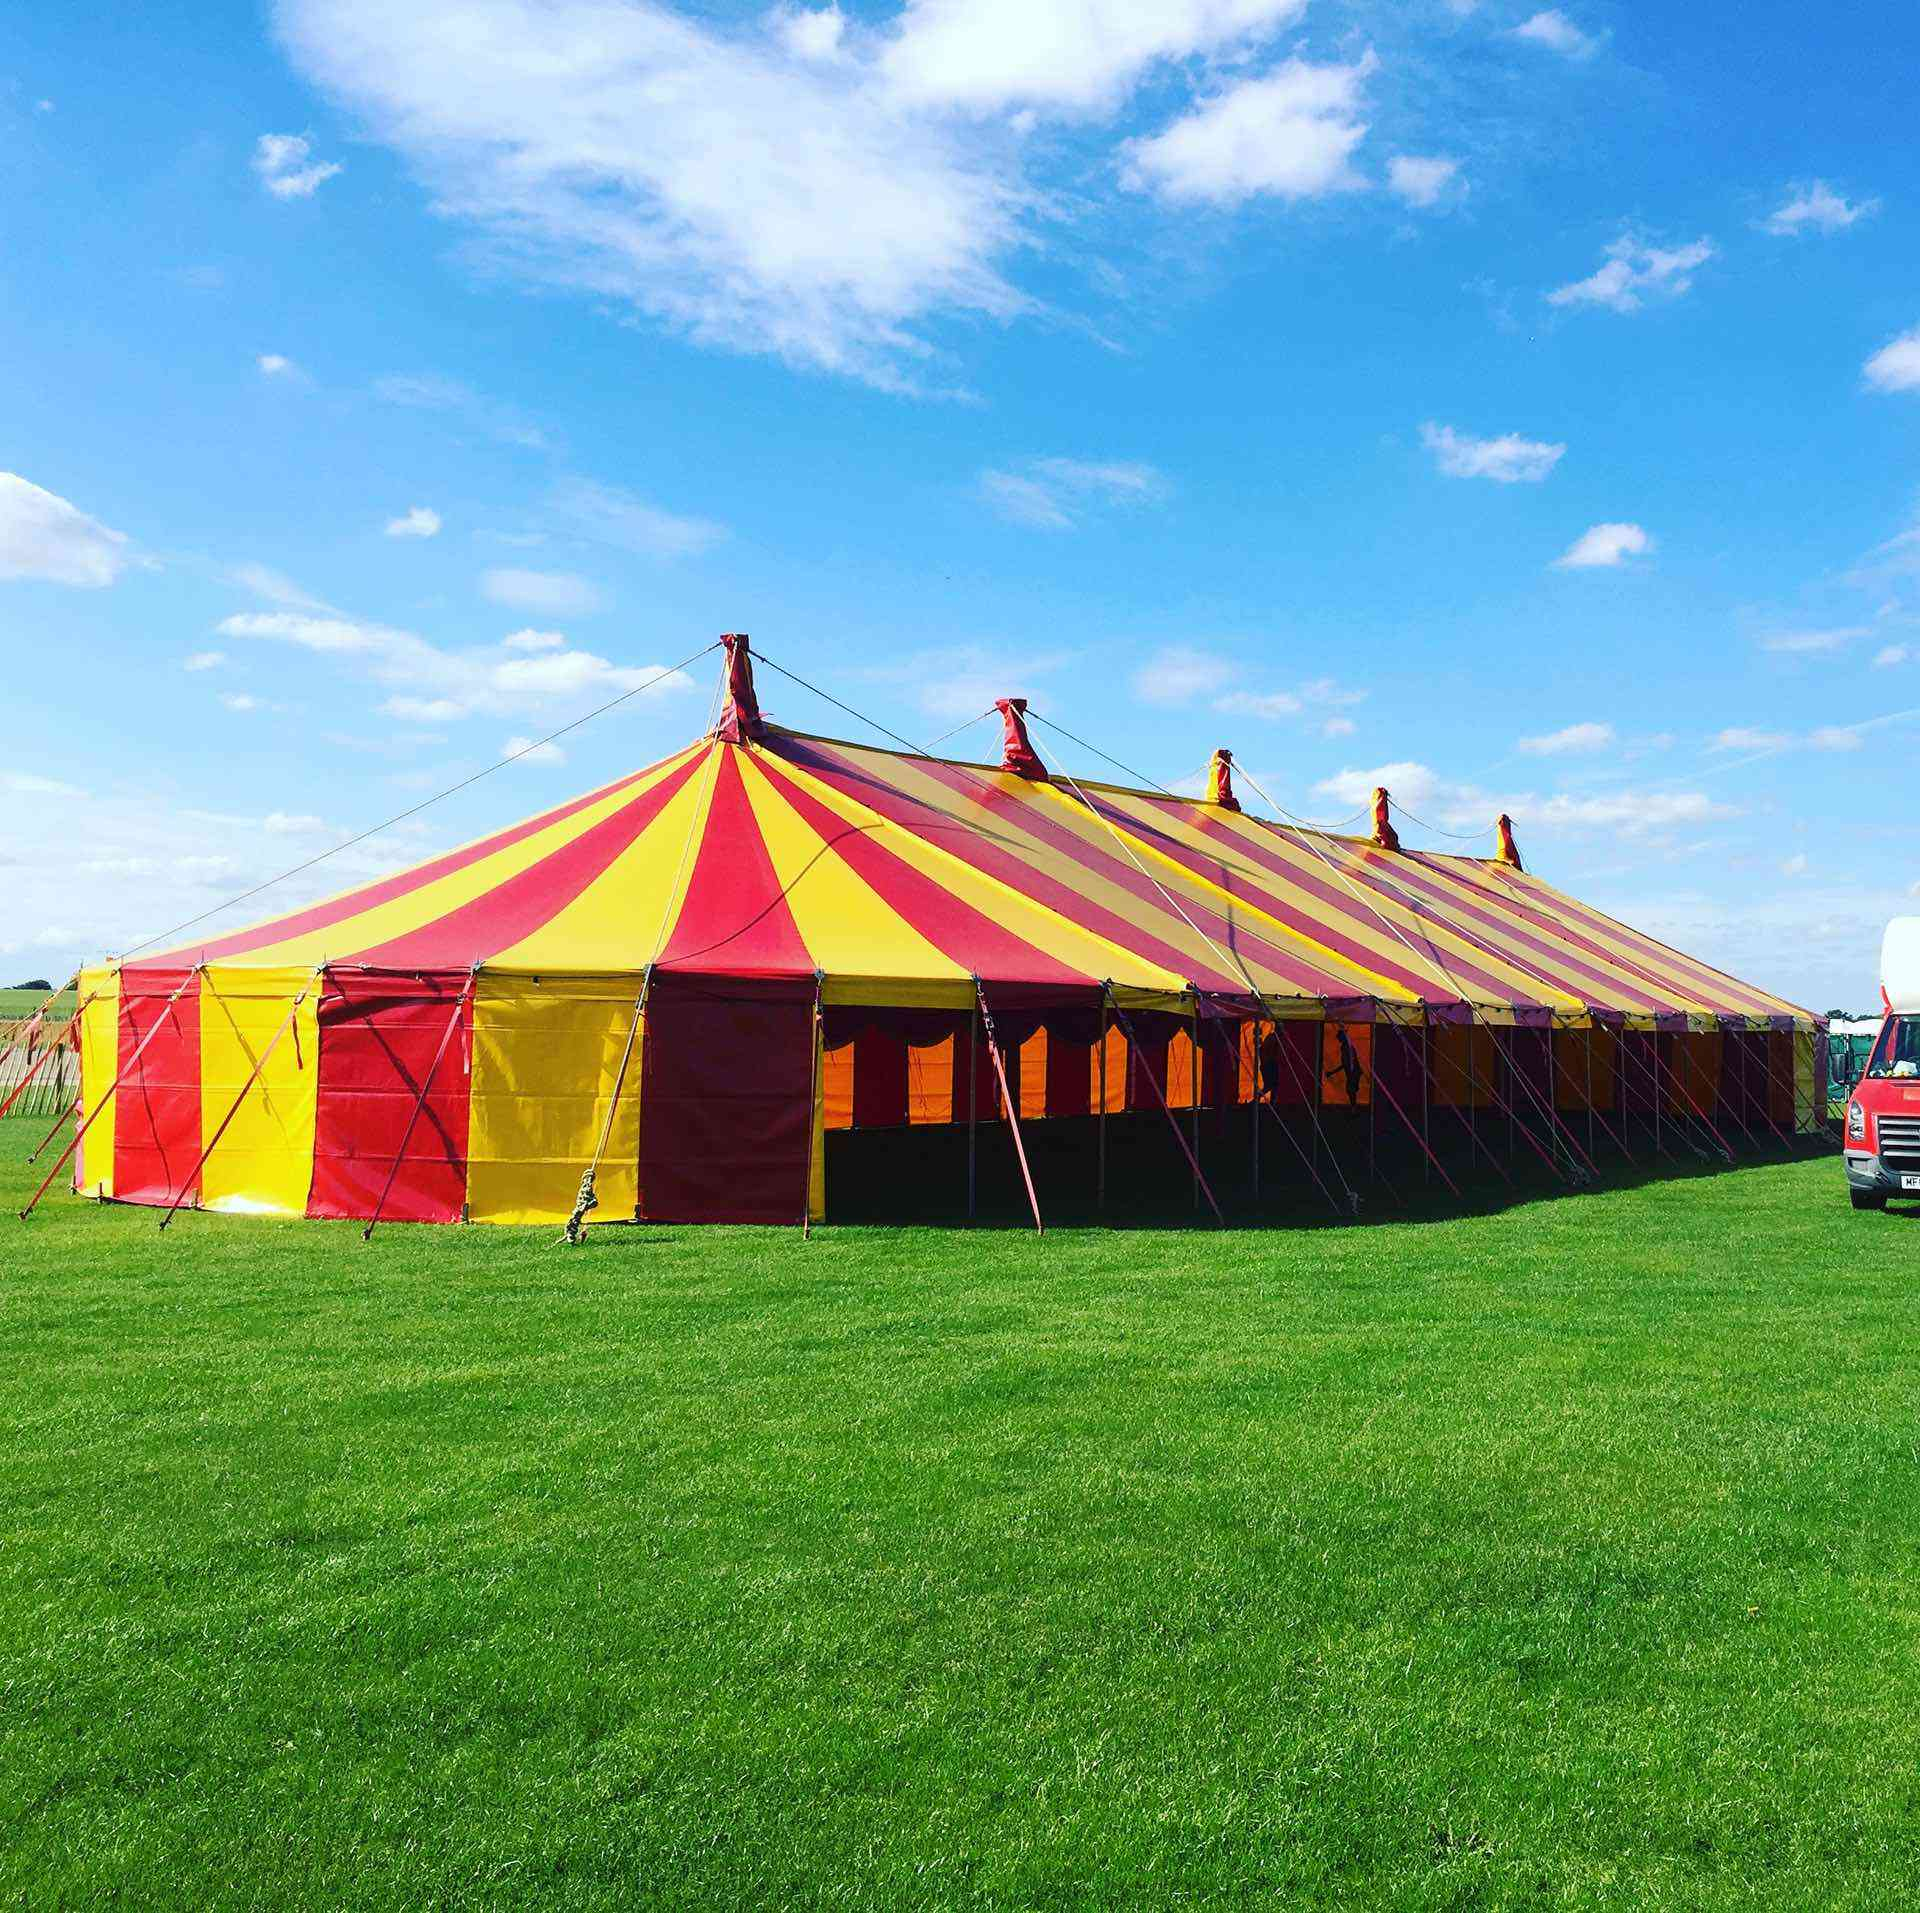 colouful large red and yellow striped marquee hire for music venue at Atomic festival in northamptonshire